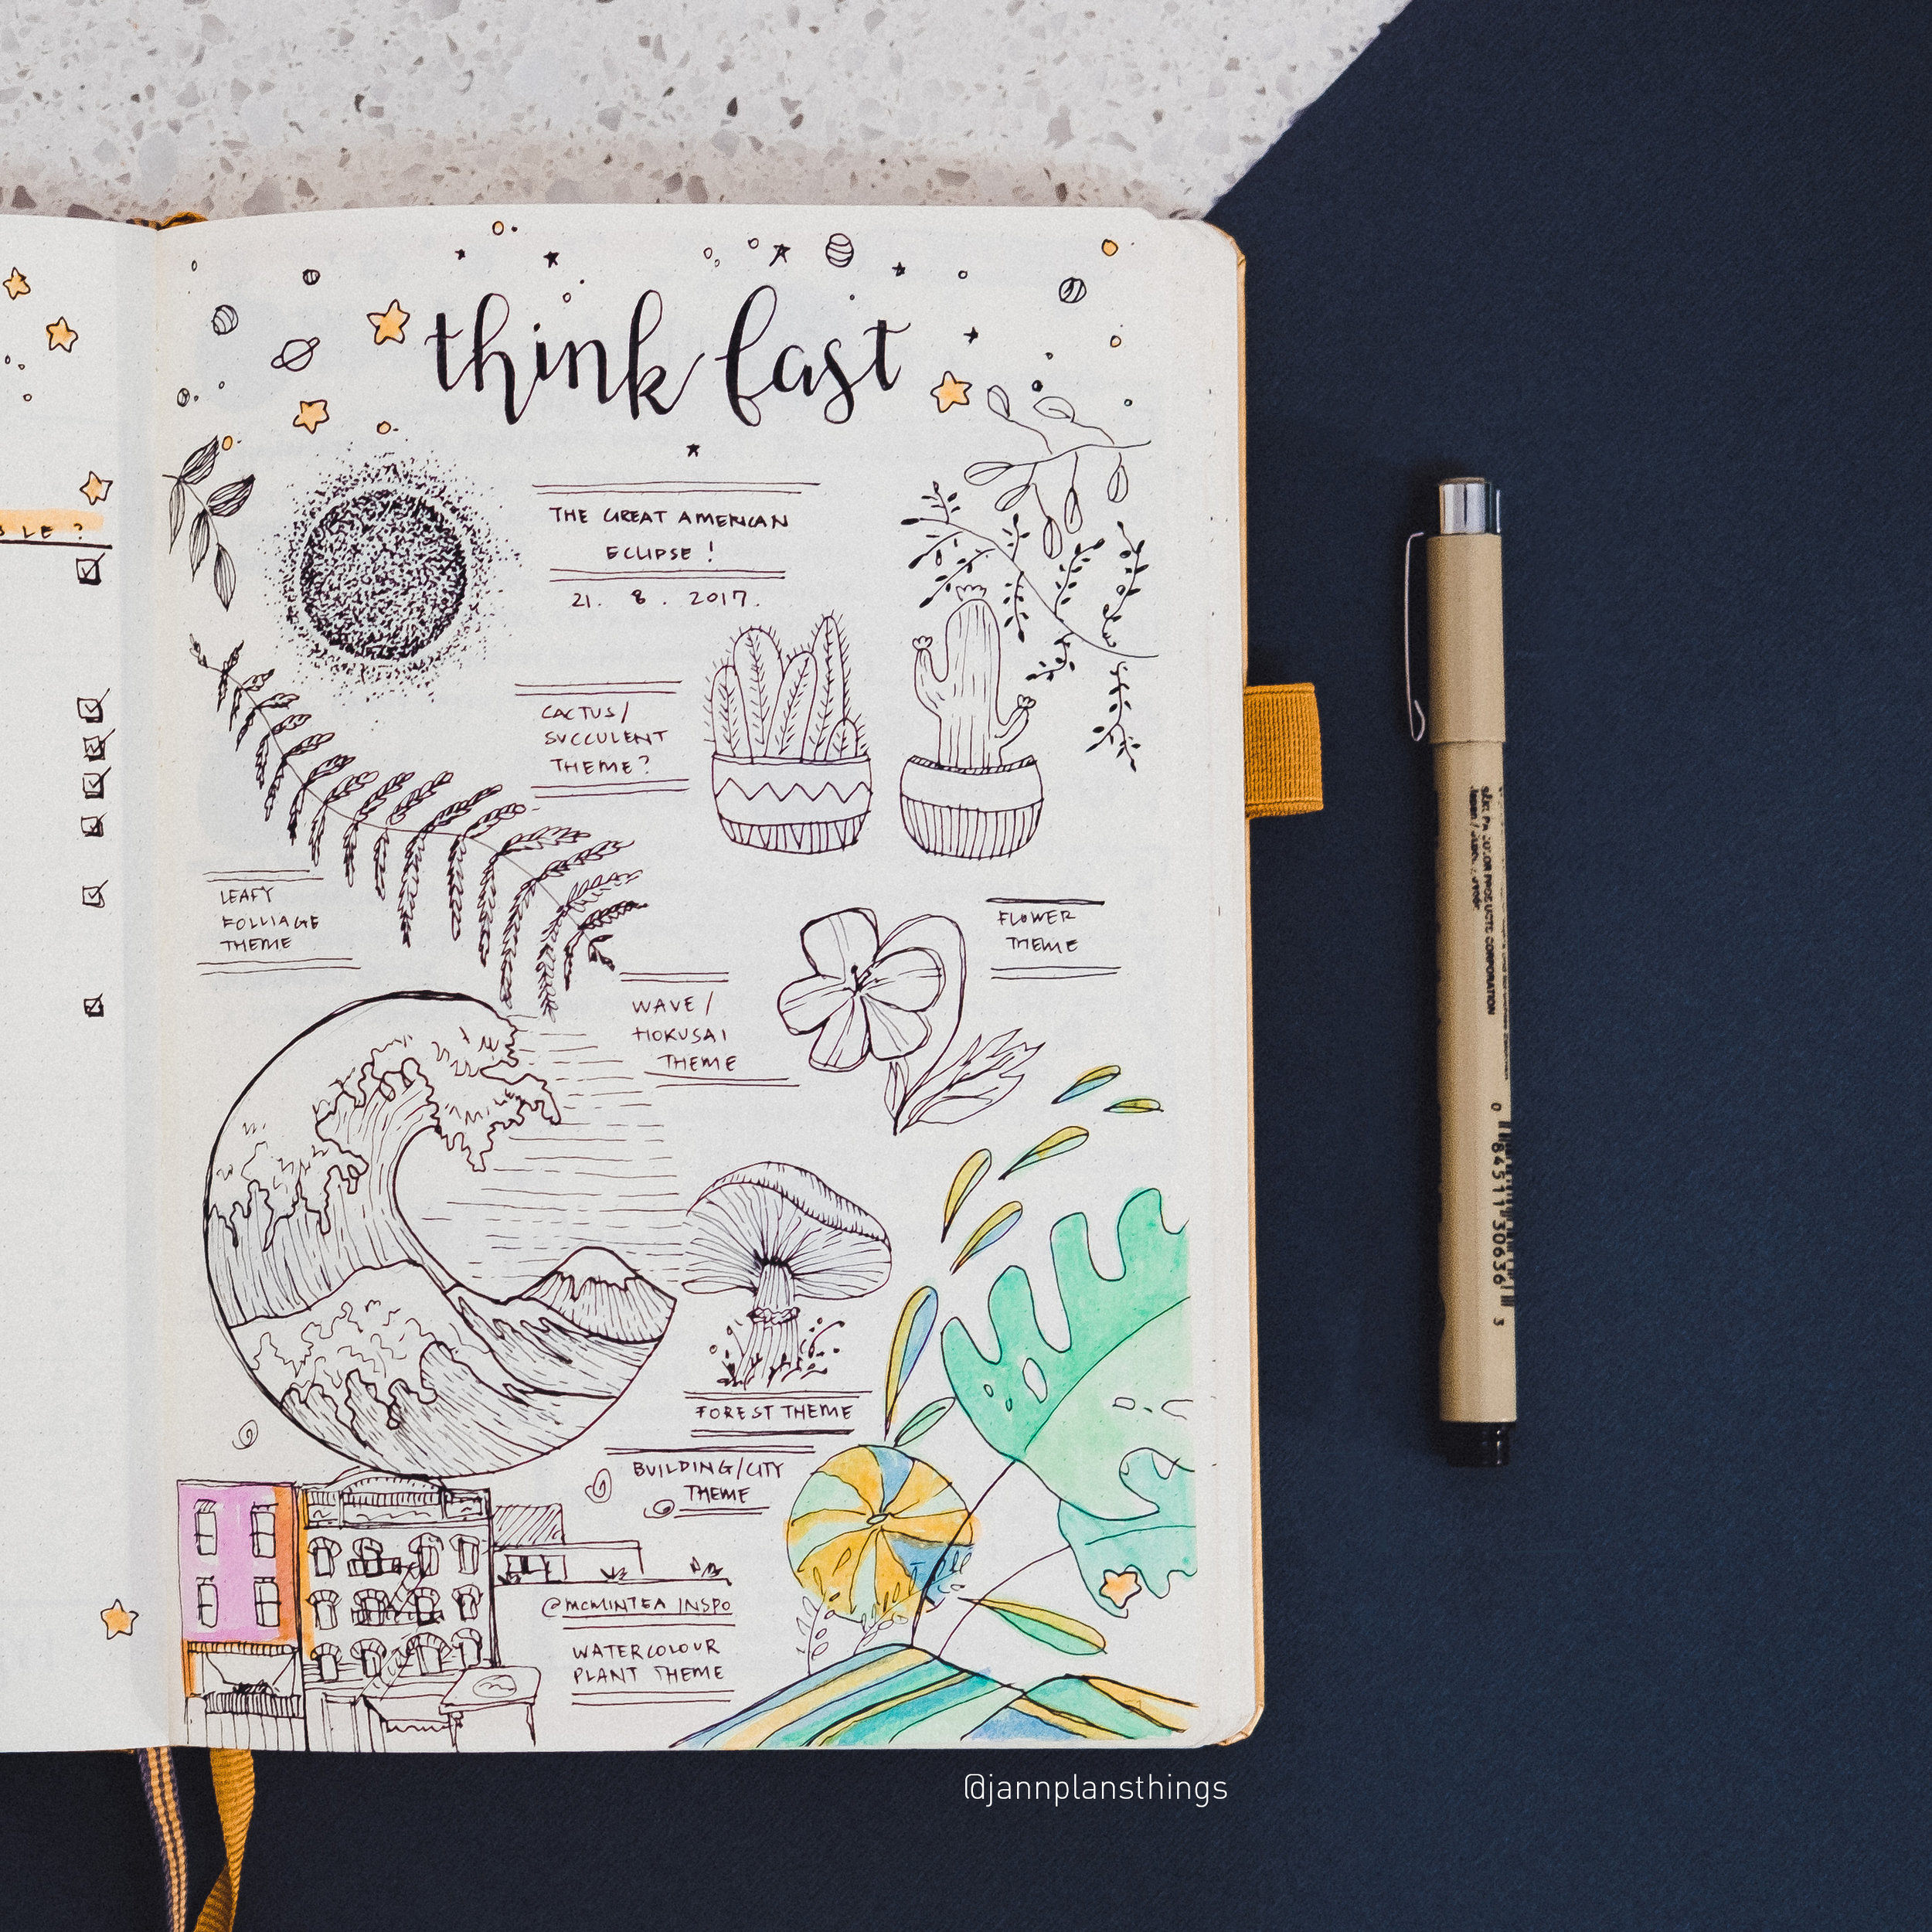 My little page of doodles